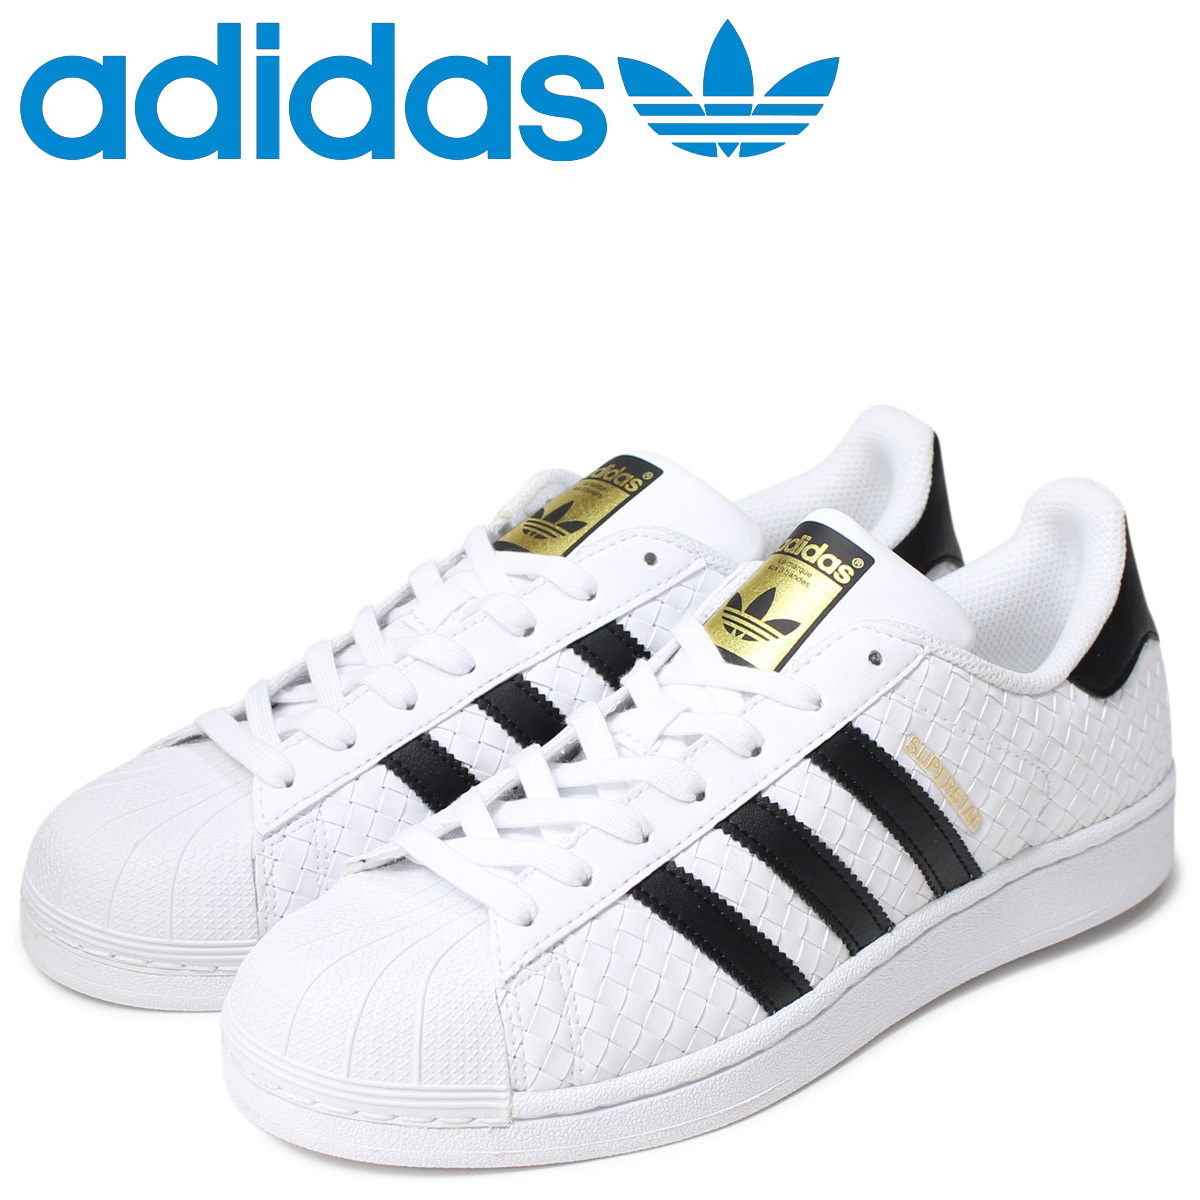 Adidas superstar adidas Originals men sneakers SUPERSTAR BB1172 shoes white   12 22 Shinnyu load  f31249a9f2b26